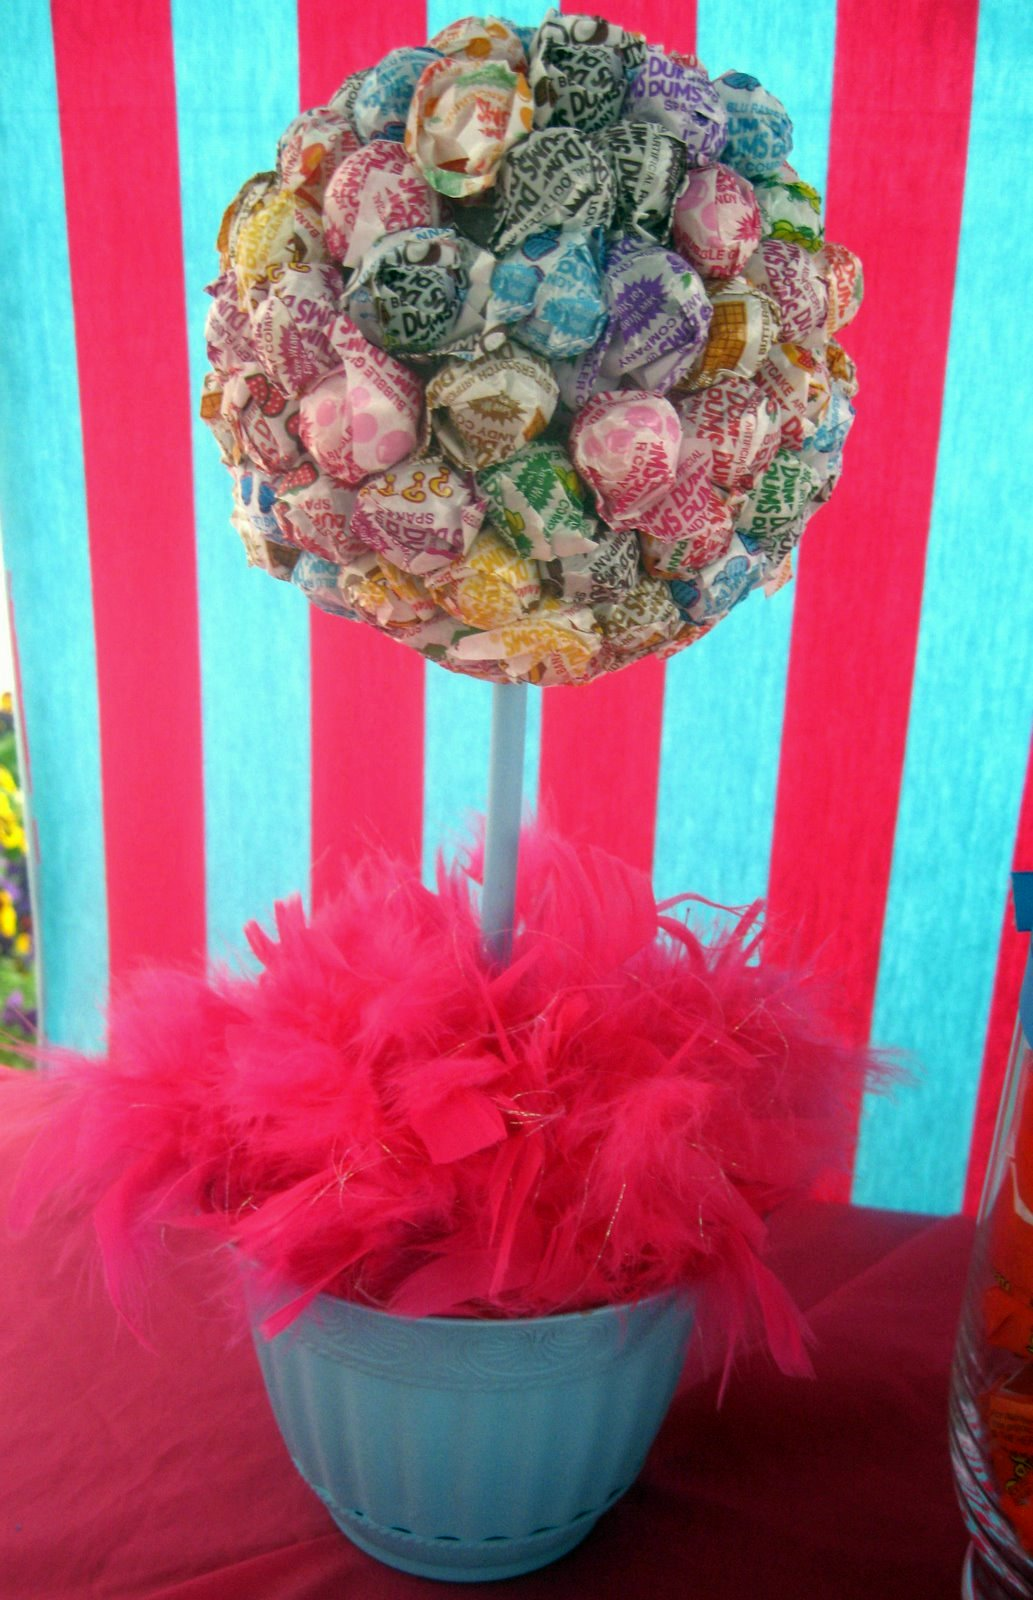 Masquerade party ideas candy buffet dollar store crafts